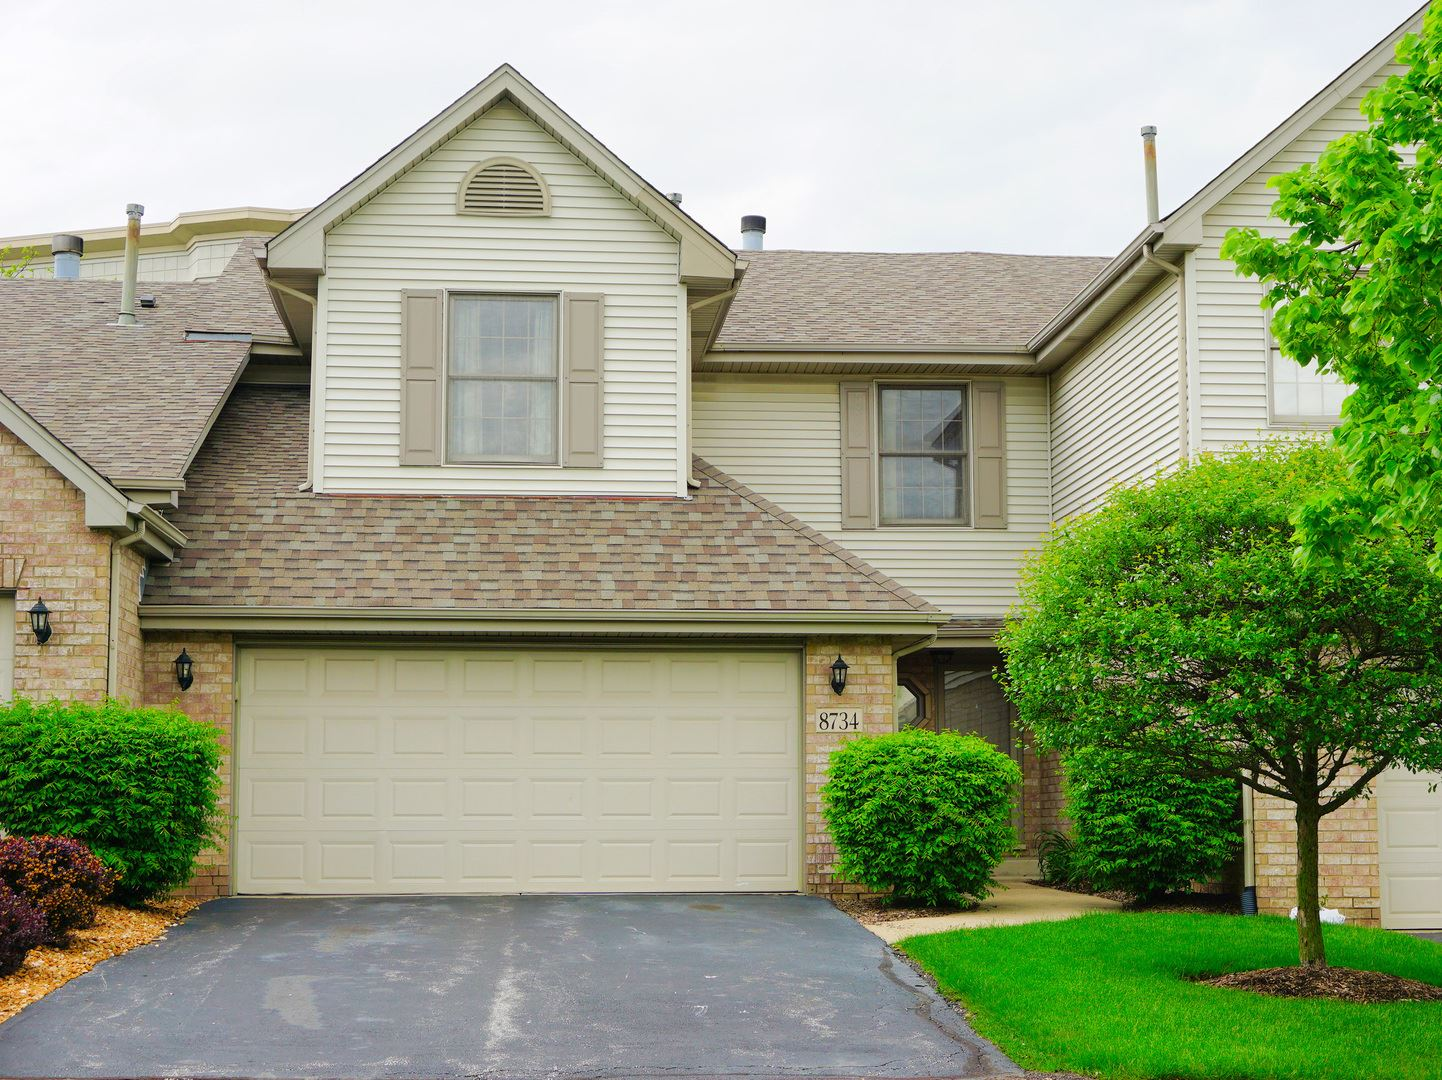 8734 CRYSTAL CREEK Drive #0, Orland Park, IL 60462 - #: 10720968